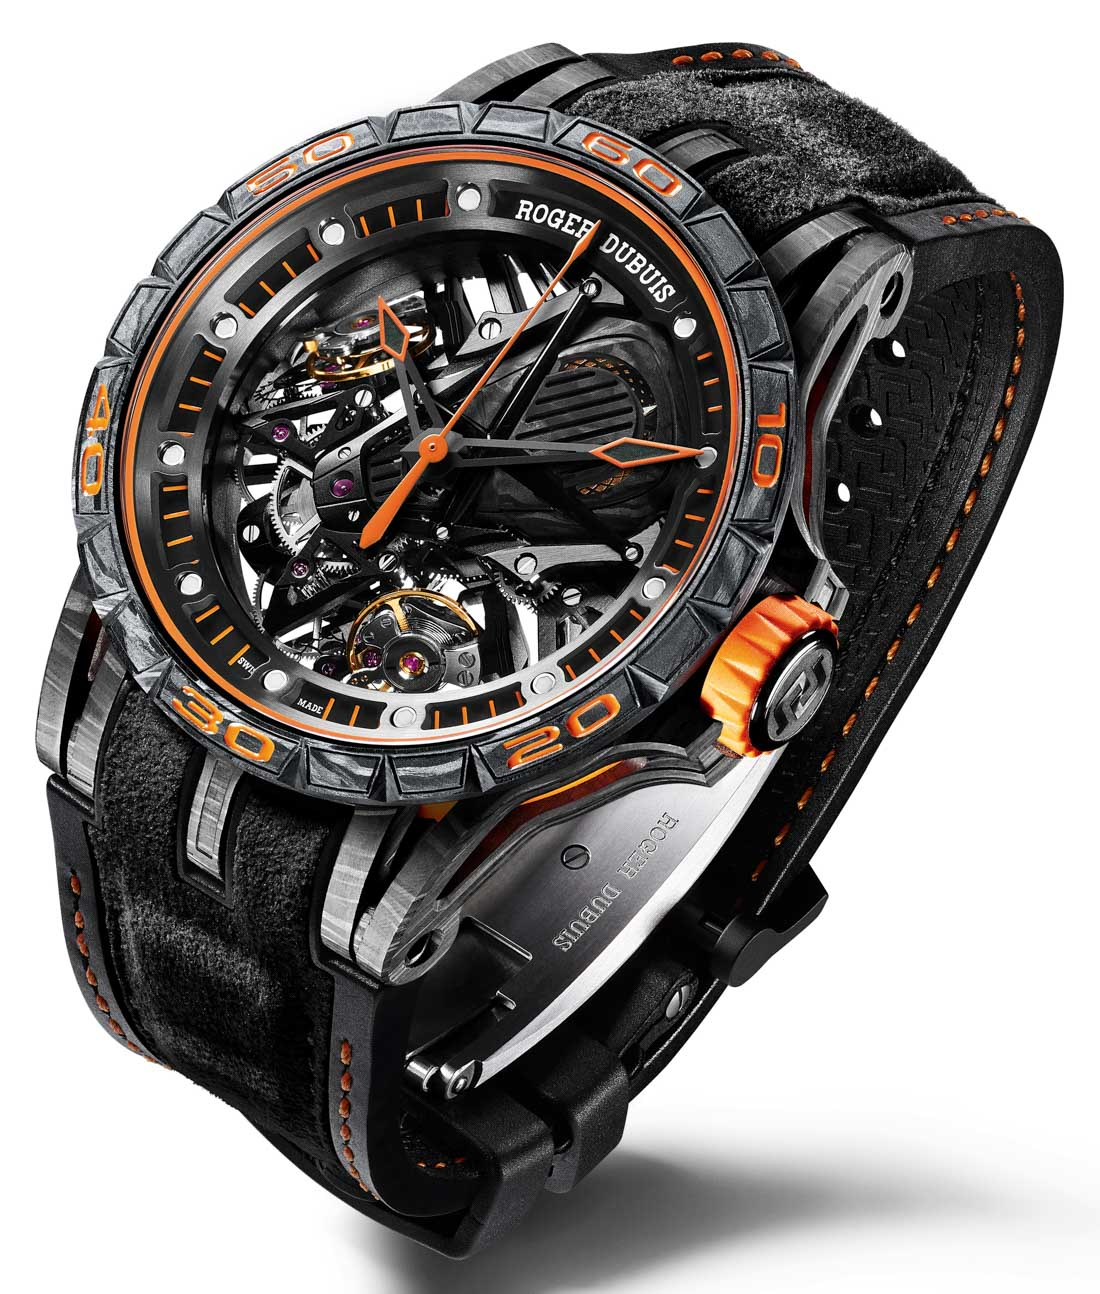 Roger Dubuis Becomes Official Partner Of Lamborghini, Launches 2 High End Imitation Watches With All-New Duotor Caliber